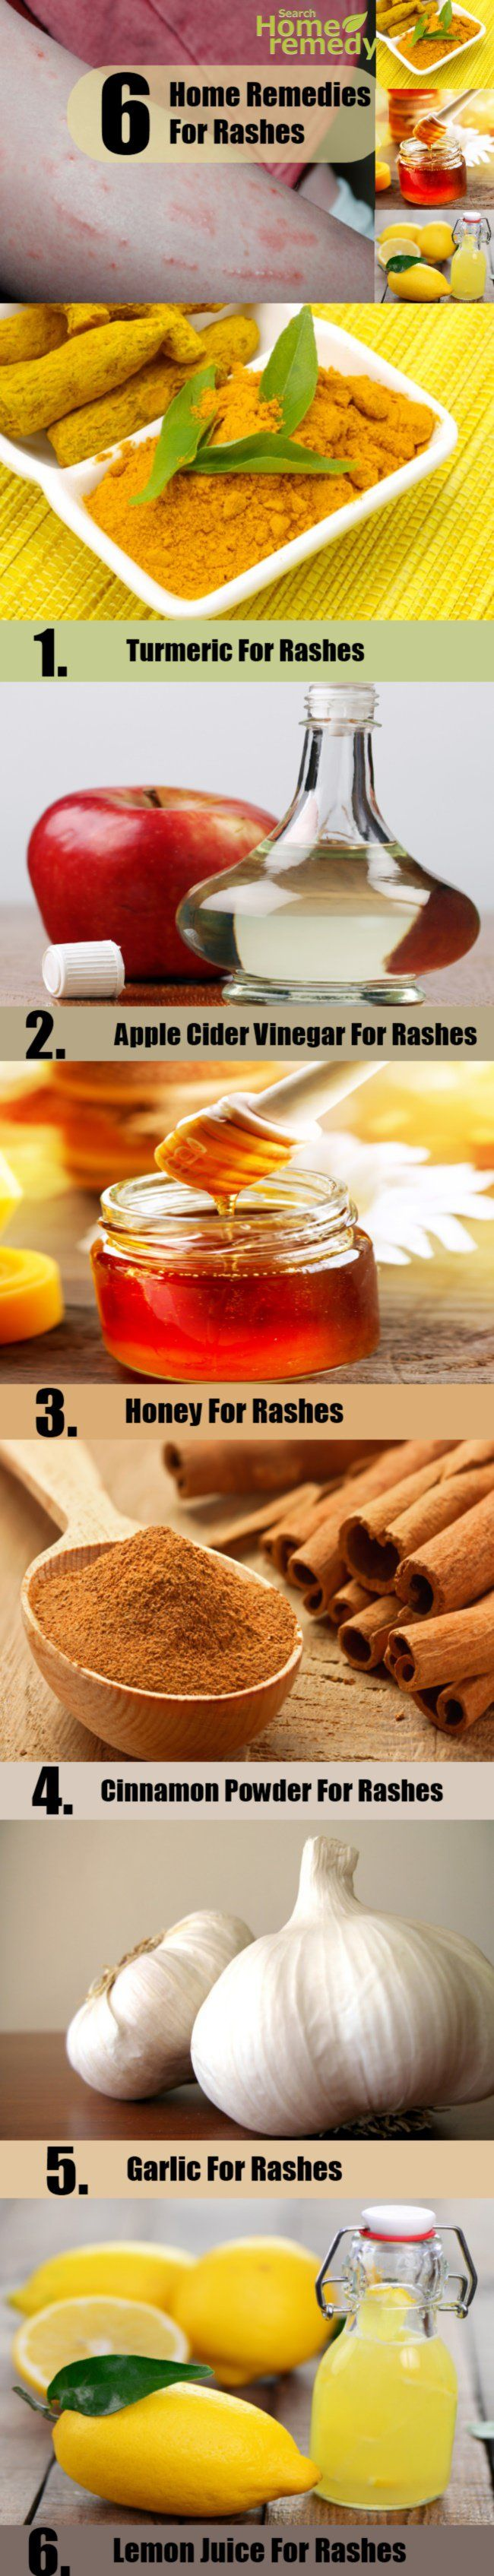 Scabies Treatment For Pinterest - Top 6 home remedies for rashes